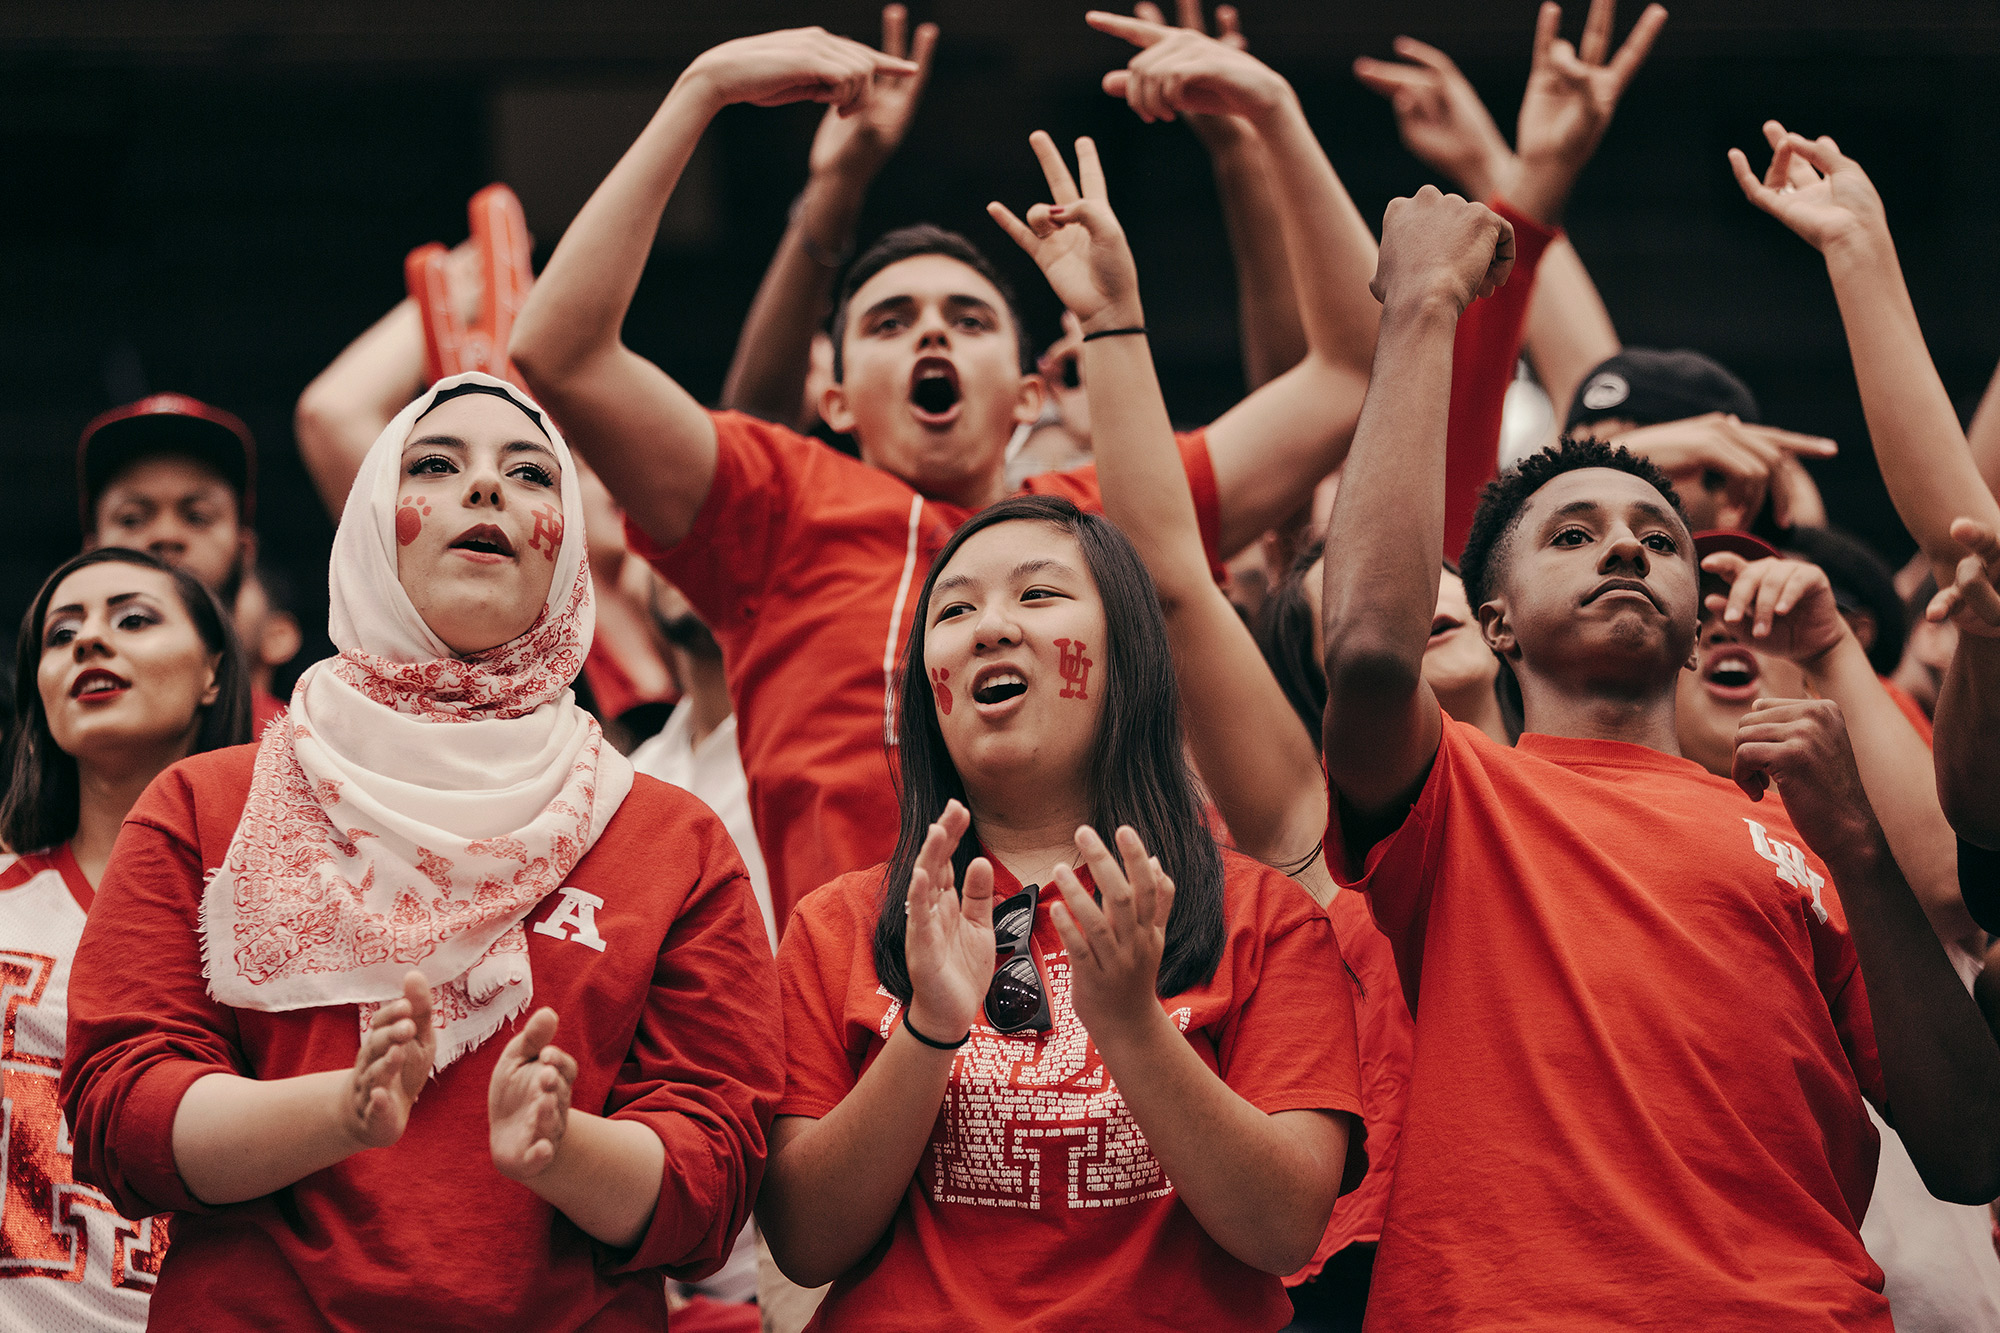 The student section at a University of Houston football game at TDECU stadium in Houston, Texas, photographed by editorial and commercial photographer, Todd Spoth.